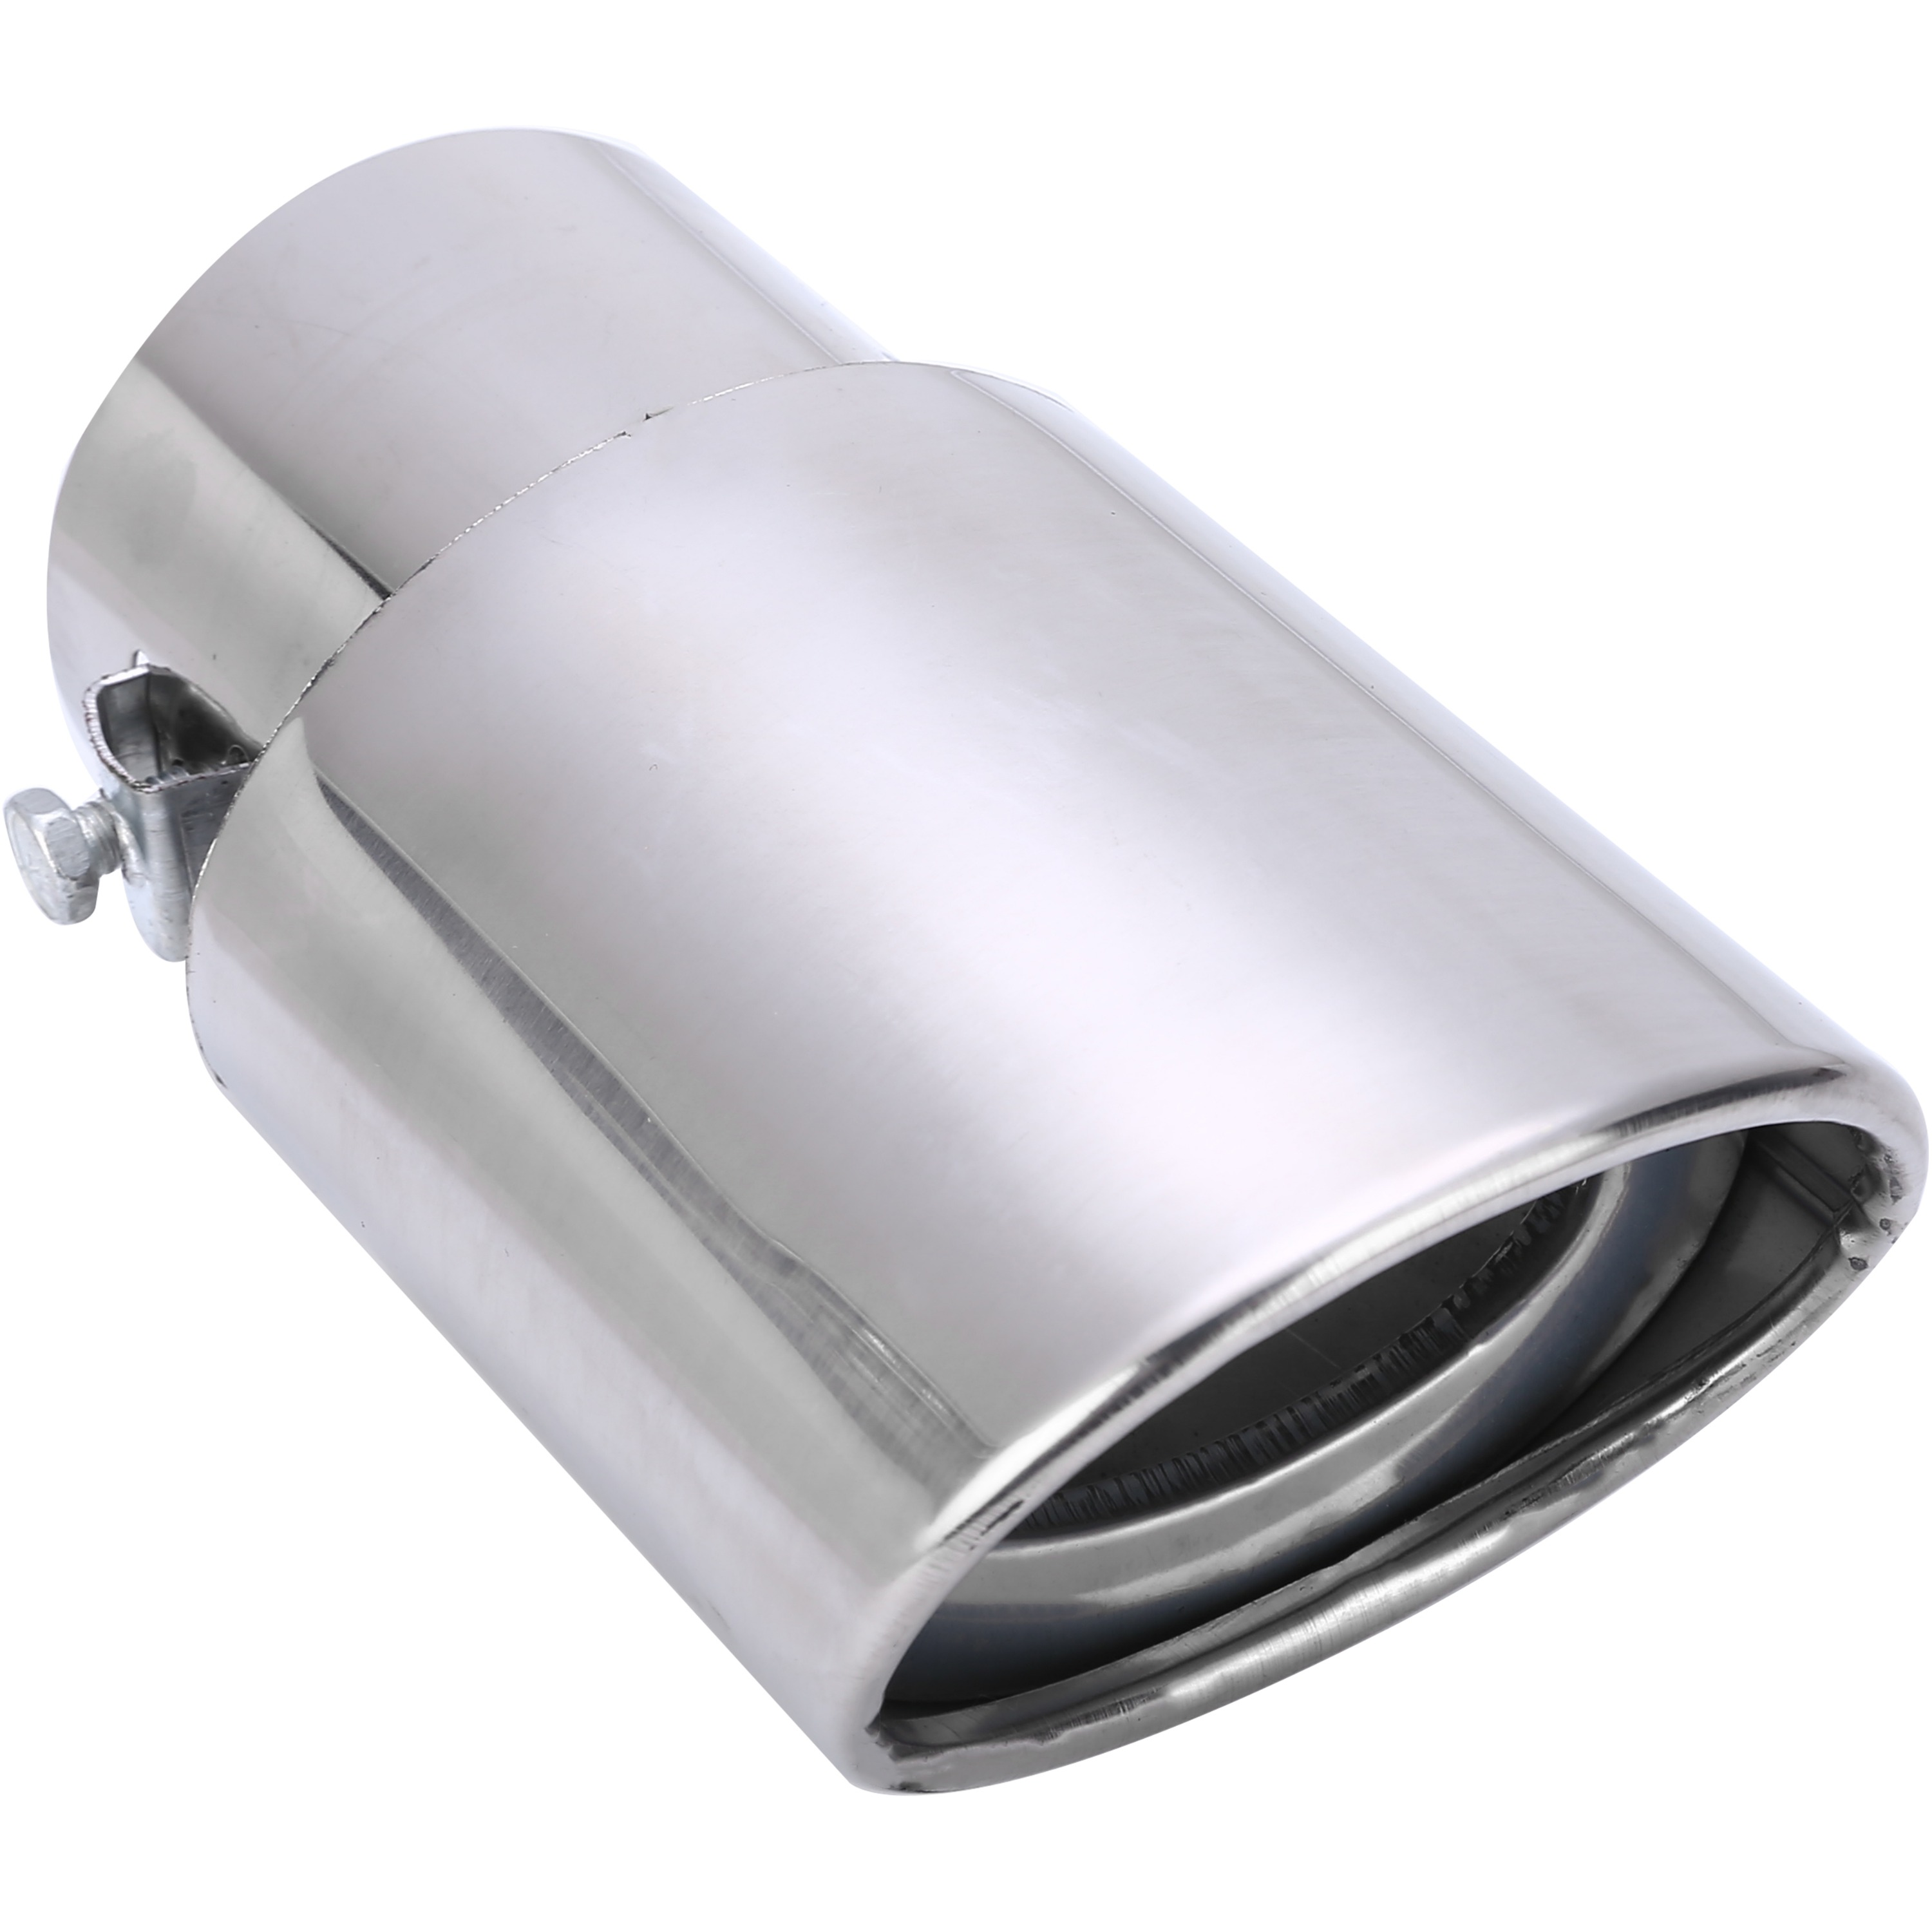 2017 Hot Sale Universal Car Rear Round Stainless Steel Exhaust Muffler Tail Pipe Tip Car Accessories